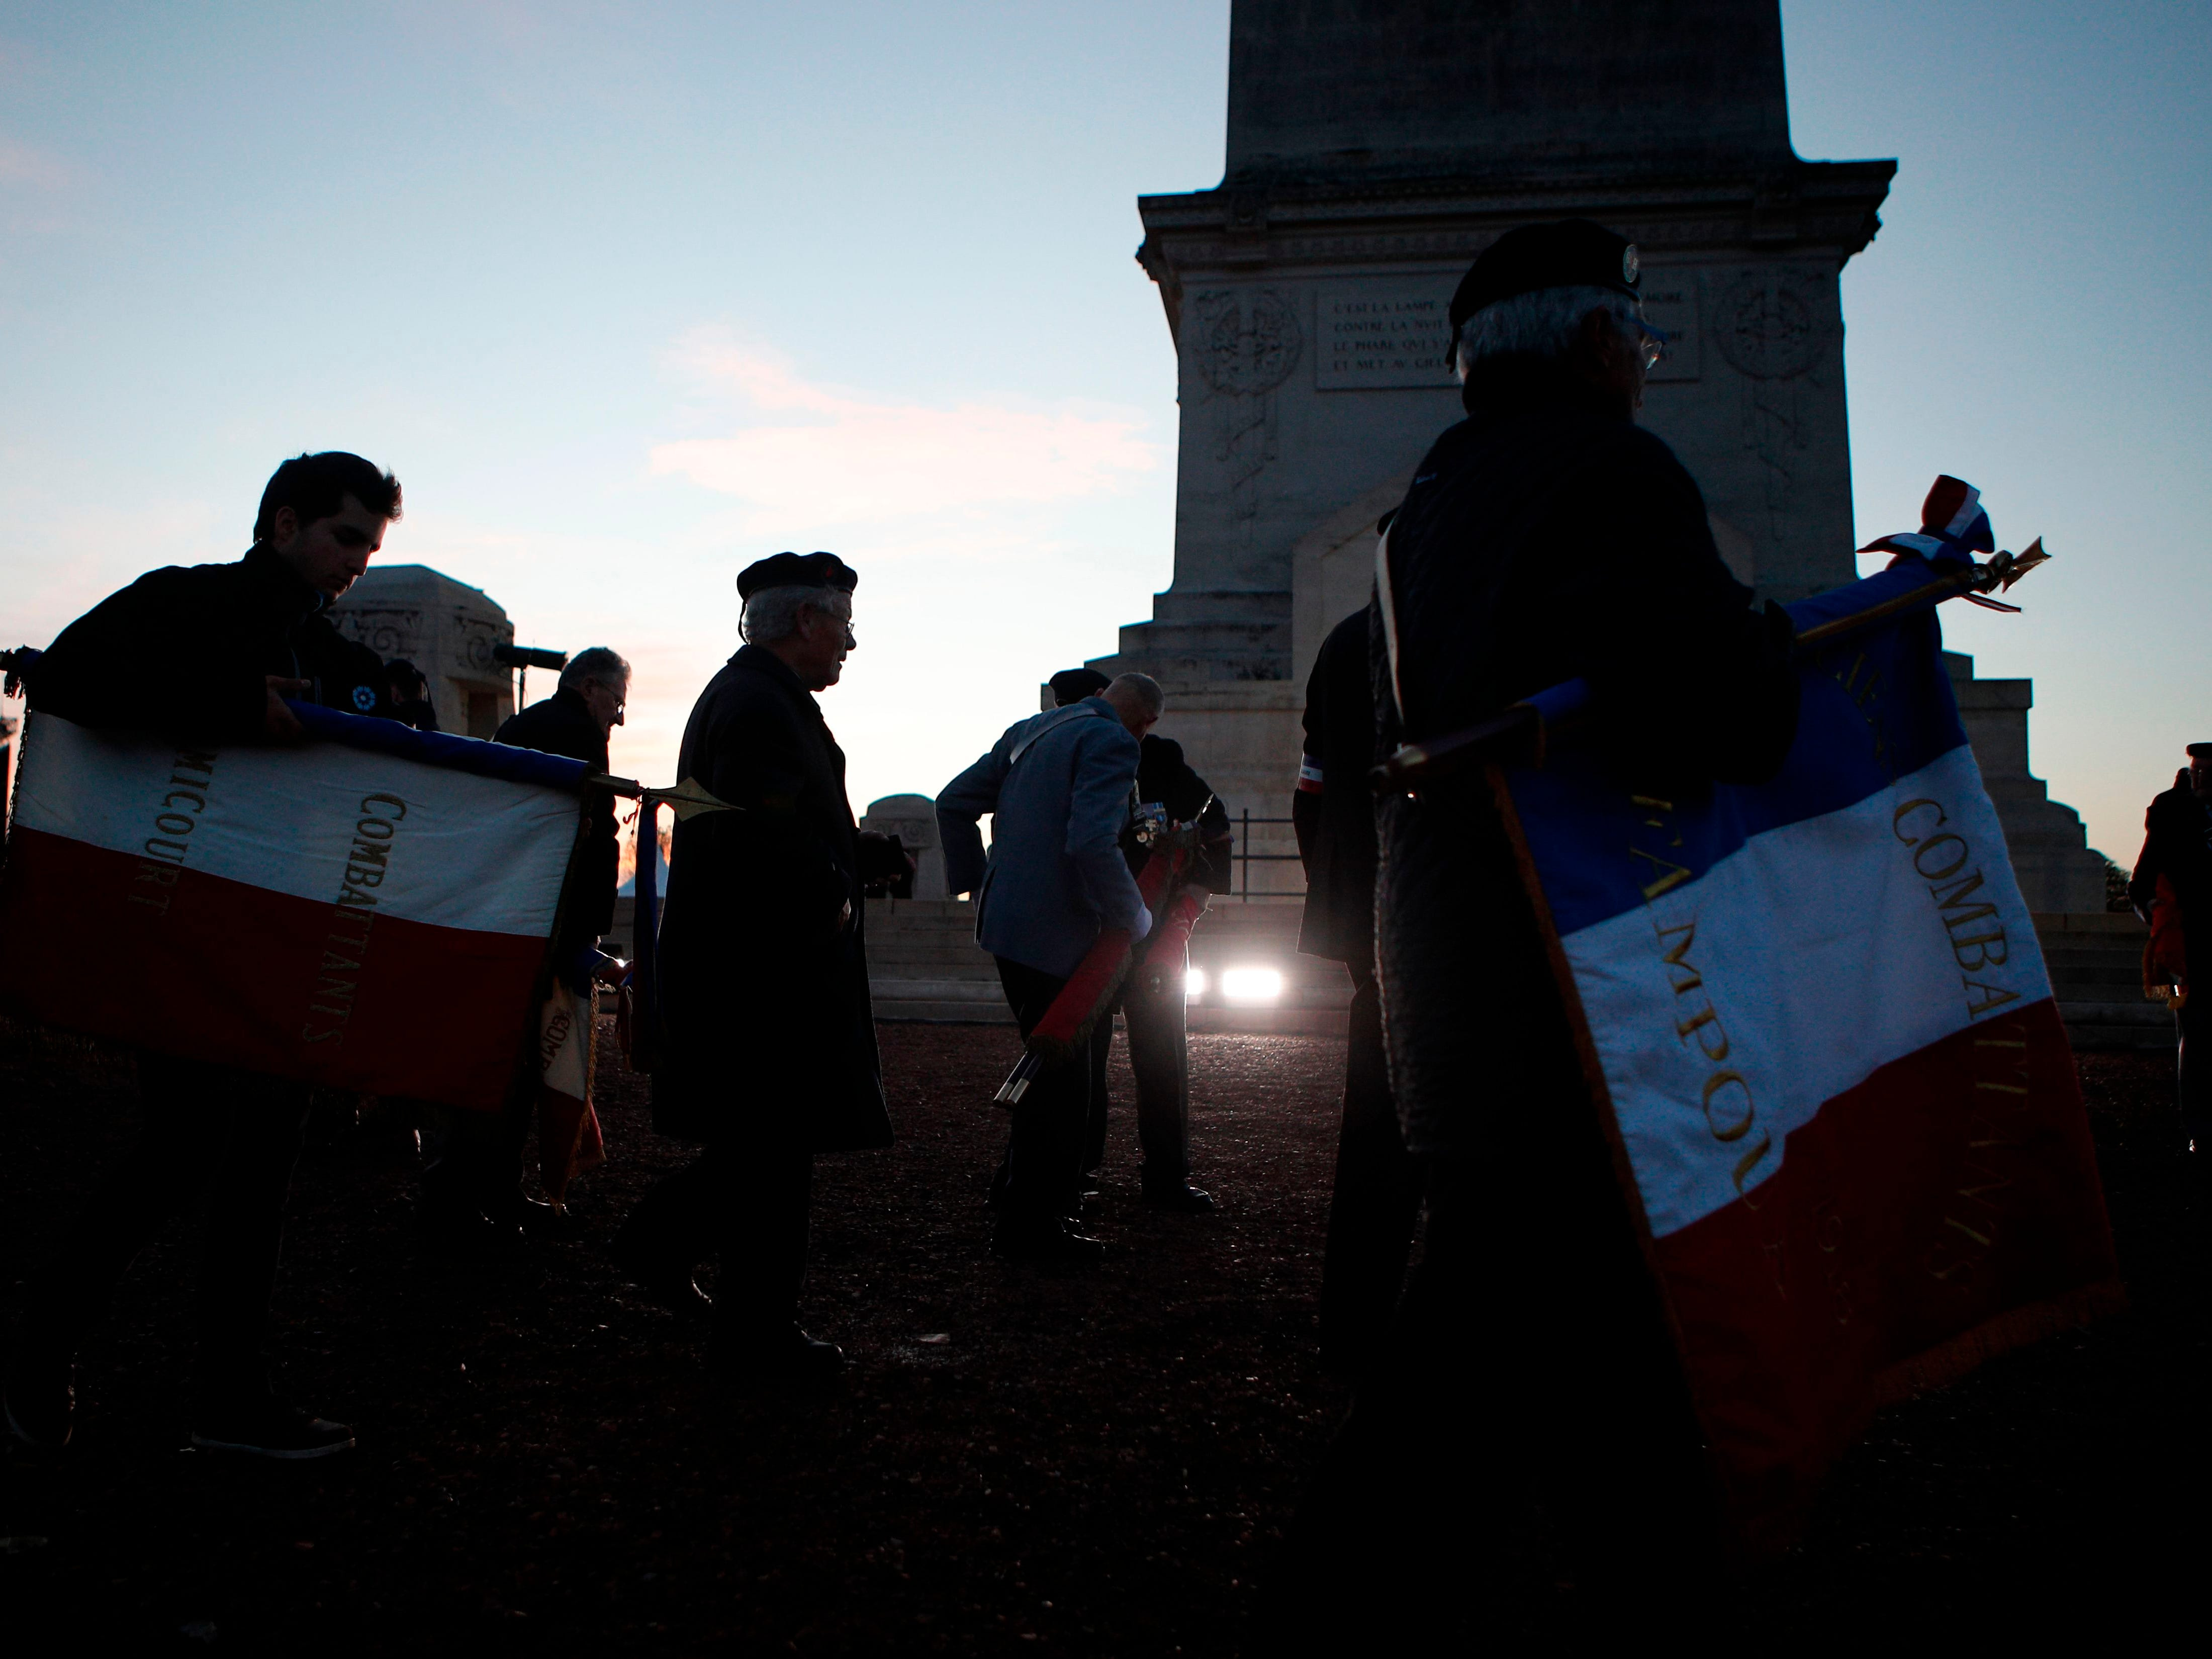 War veterans attend a remembrance ceremony at the Notre Dame de Lorette war cemetery near Arras, northern France, on November 8, 2018 as part of ceremonies marking the 100th anniversary of the end of WWI. (Photo by Francois Mori / POOL / AFP)FRANCOIS MORI/AFP/Getty Images ORIG FILE ID: AFP_1AO67H